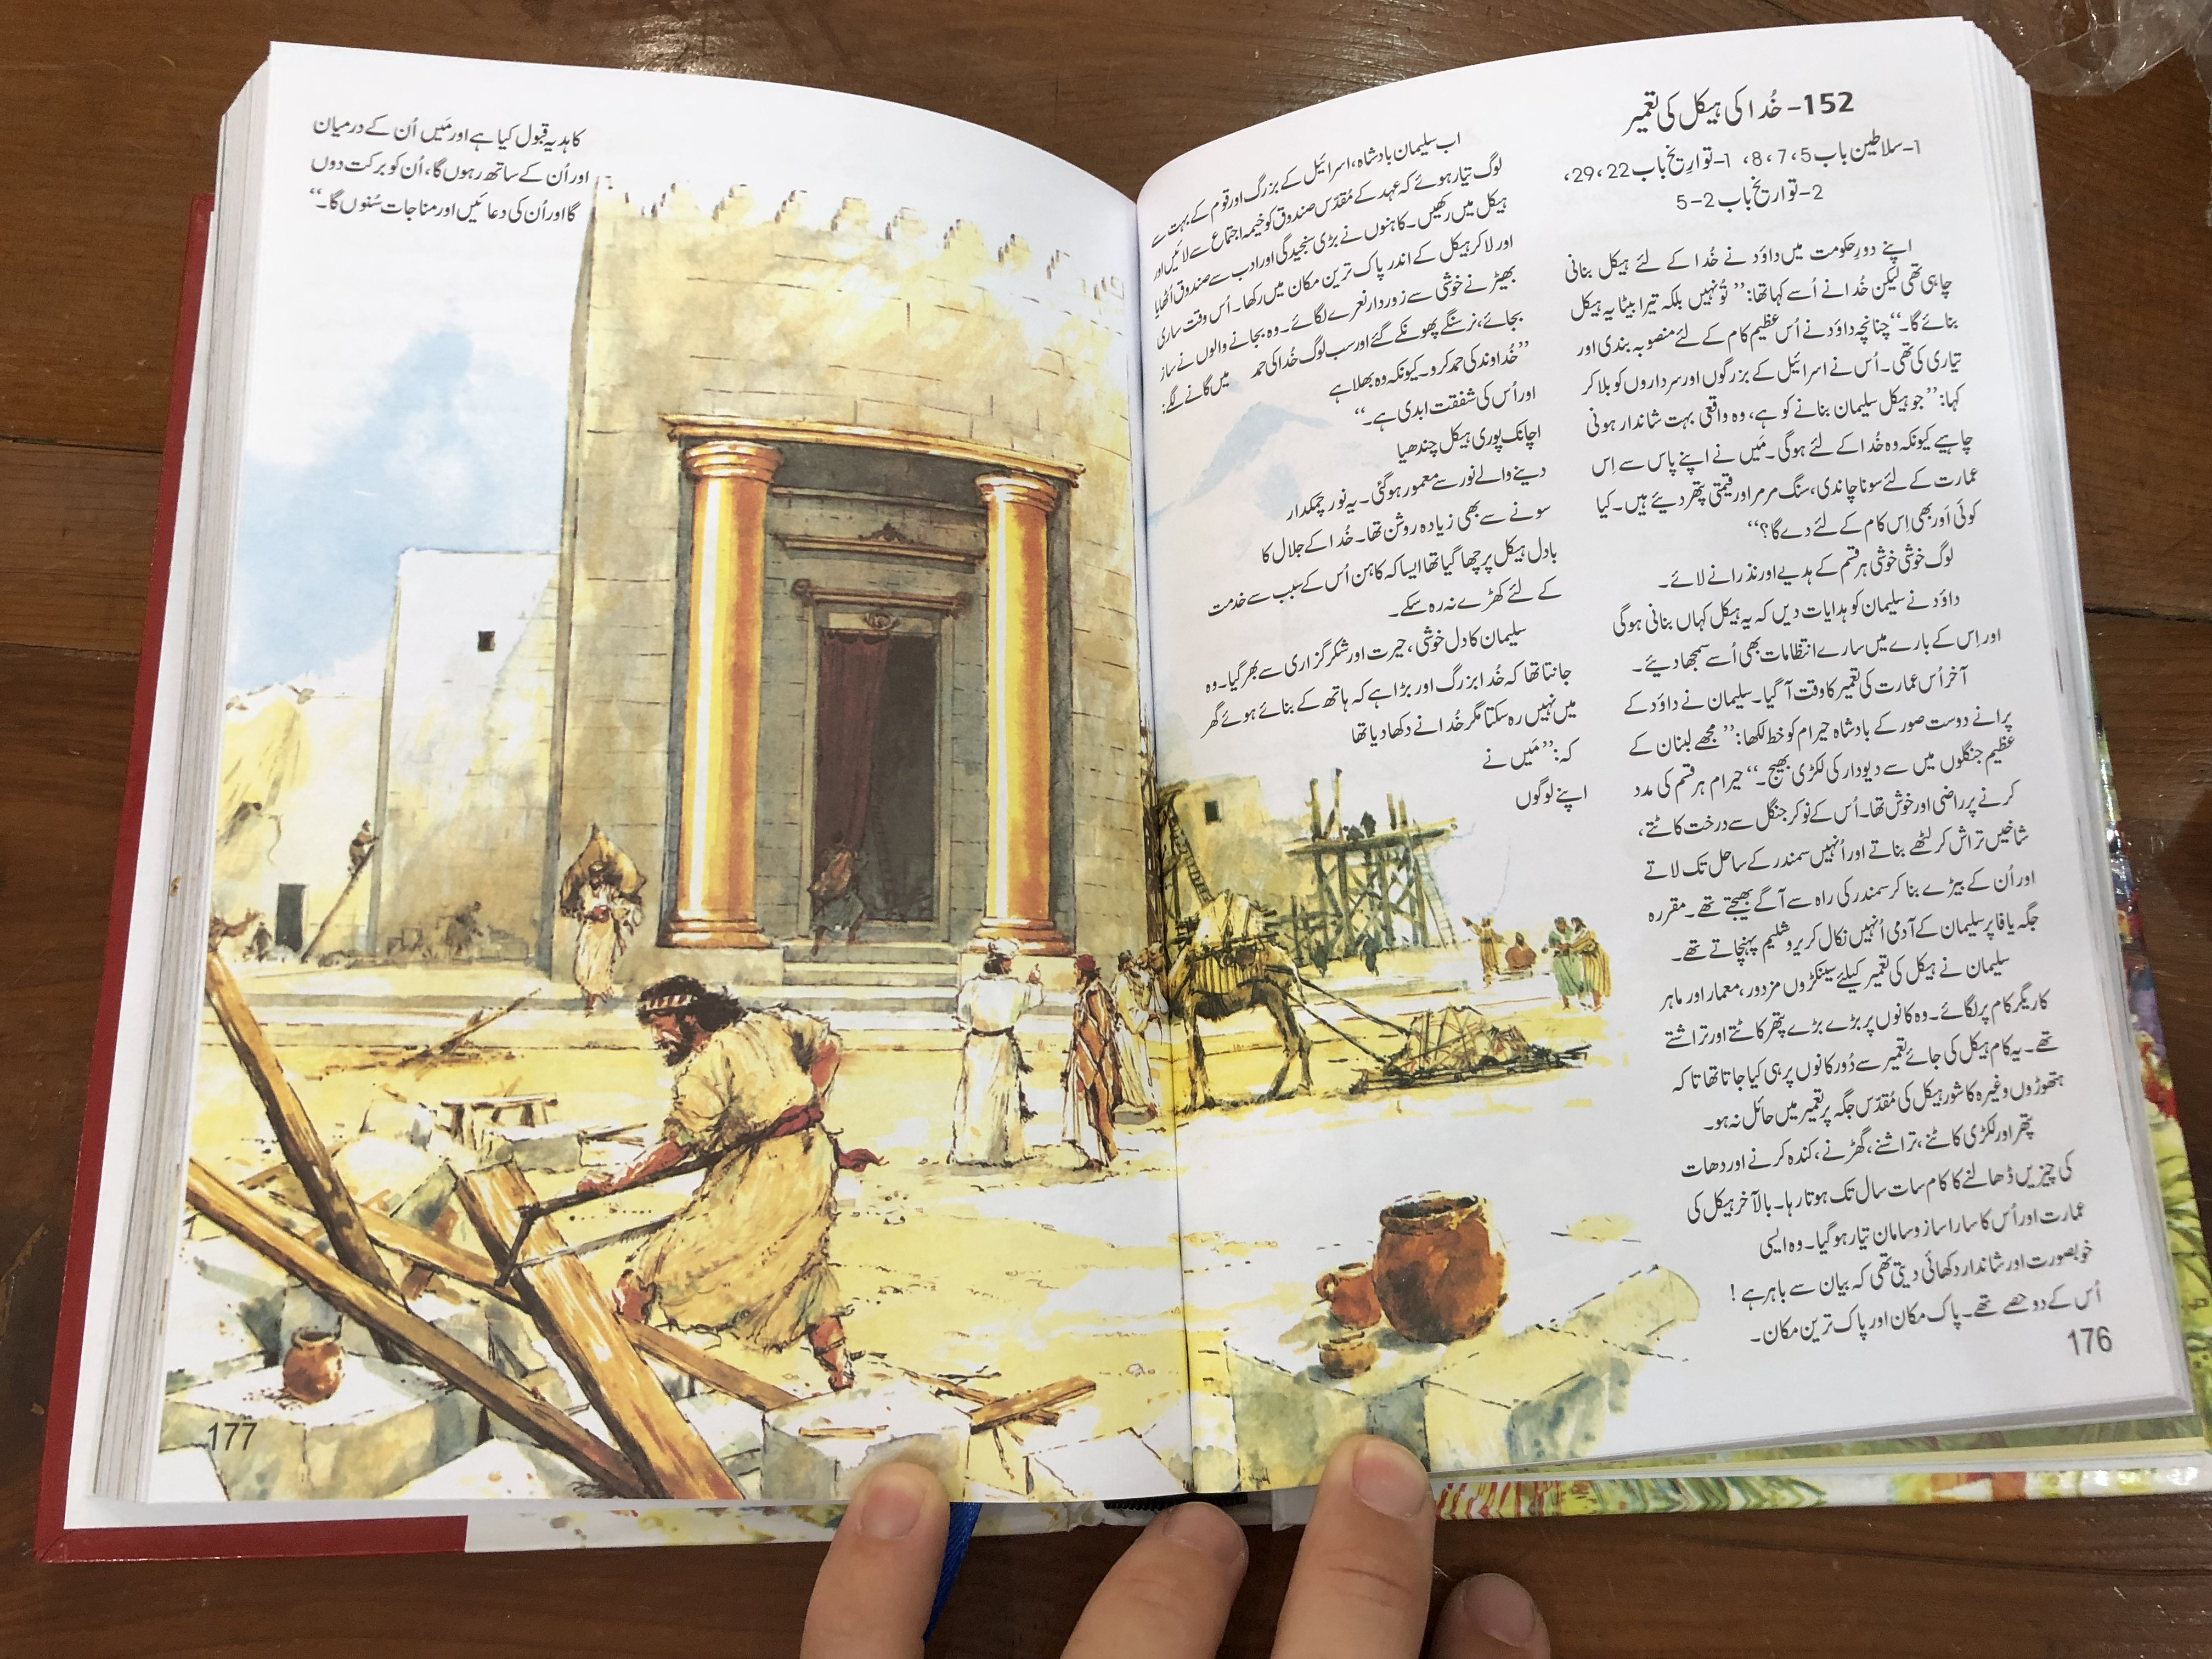 the-lion-children-s-bible-in-365-stories-by-mary-batchelor-urdu-edition-pakistan-bible-society-2018-hardcover-11-.jpg